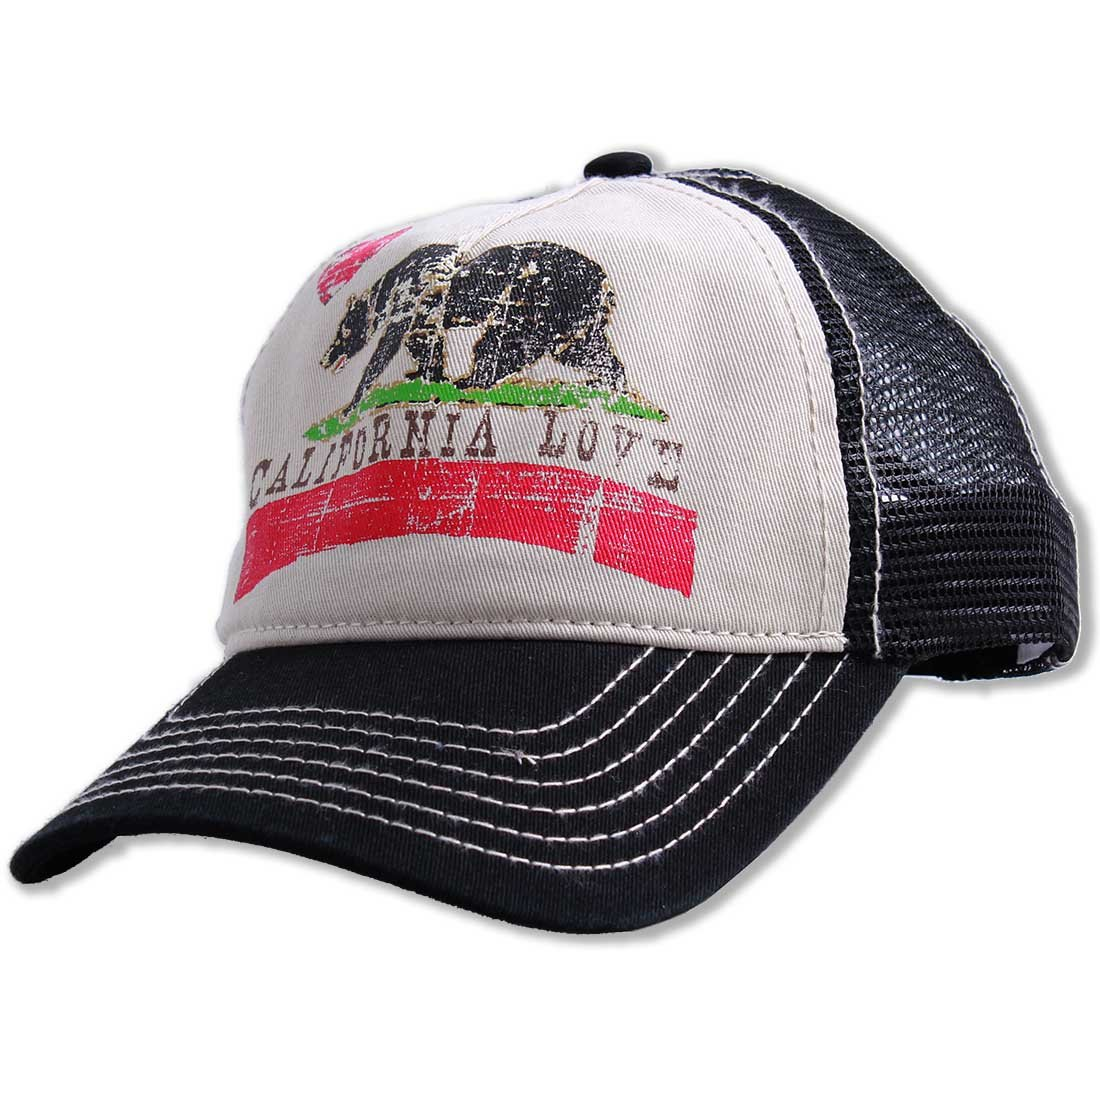 Dolphin Shirt Co California Love Distressed Juniors Pit Stop Twill Trucker Hat - Black